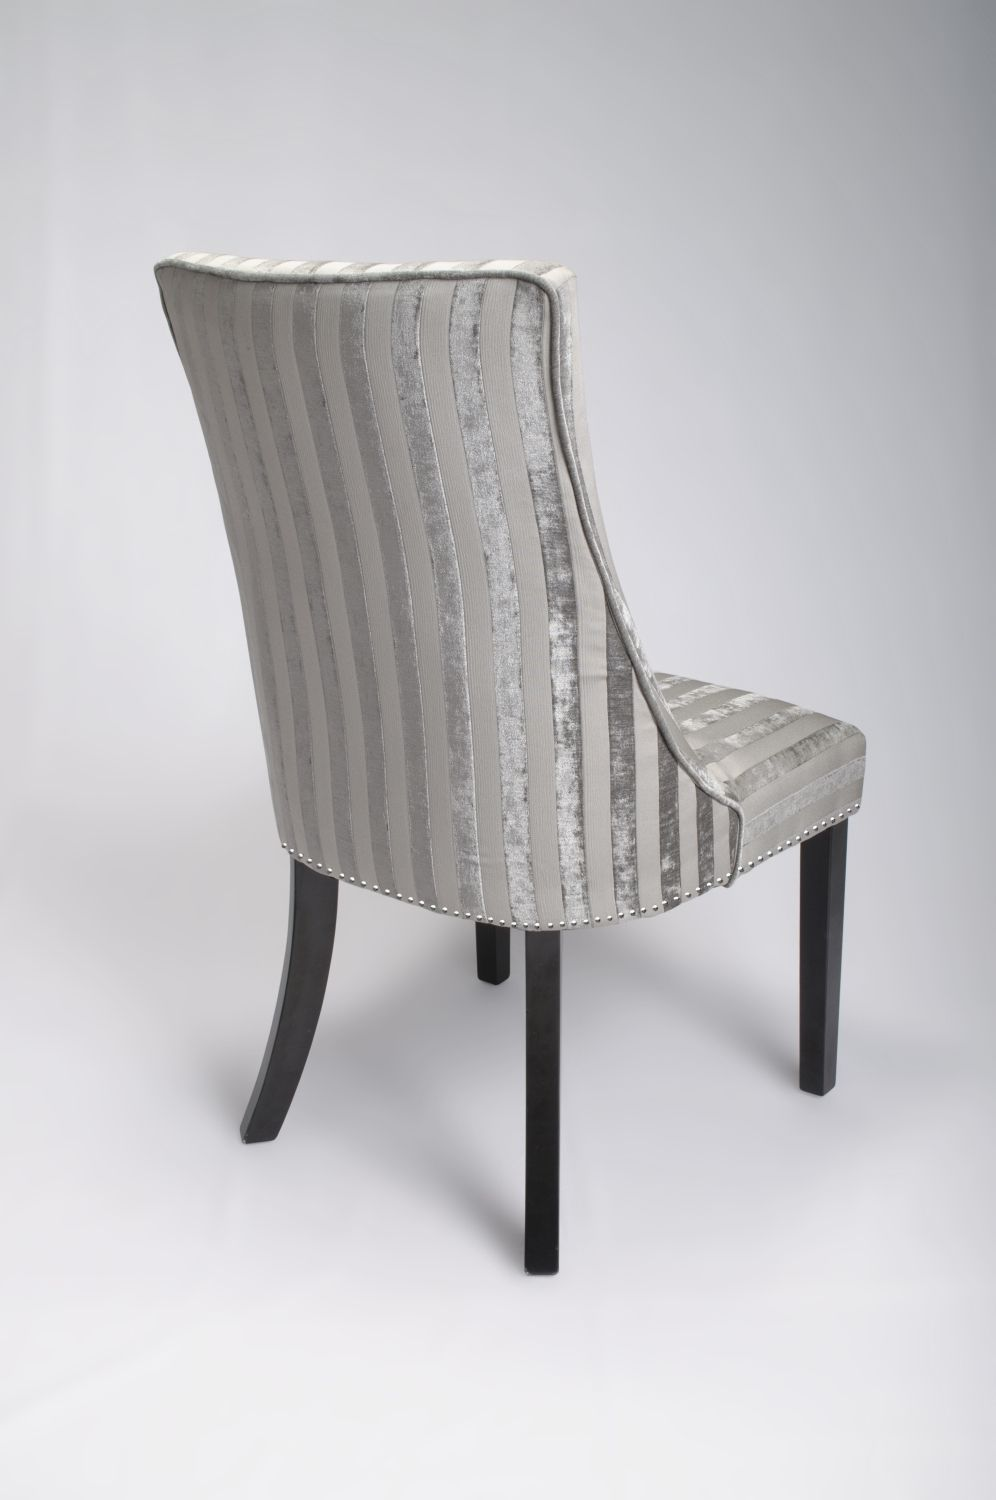 Pair Of Balmoral Velvet Stripe Mink Dining Chairs With  : pair of balmoral velvet stripe mink dining chairs with dark wooden legs 2 51981 p from www.uniquechicfurniture.co.uk size 996 x 1500 jpeg 82kB